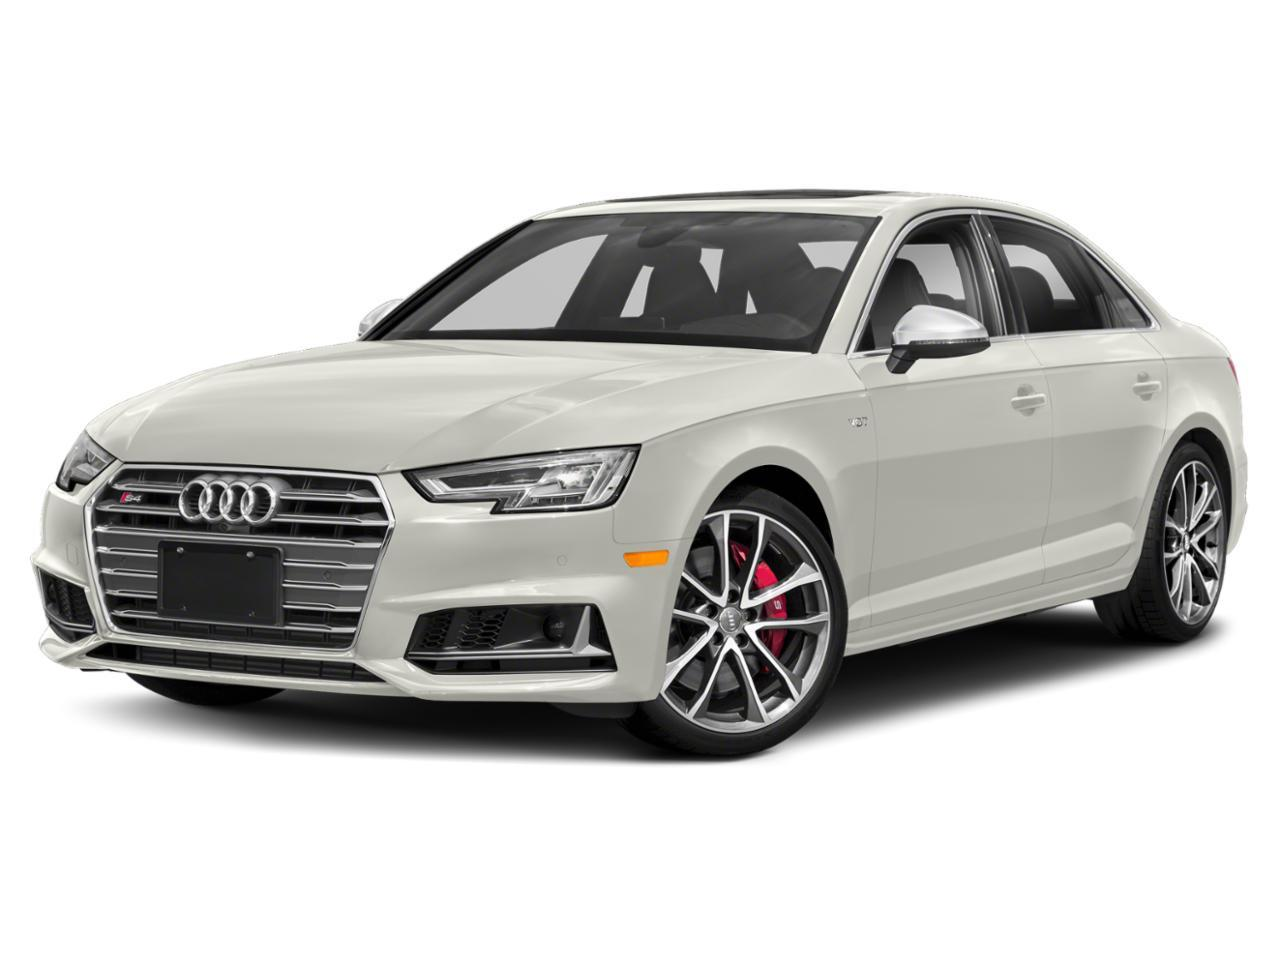 2018 Audi S4 Vehicle Photo in San Antonio, TX 78257